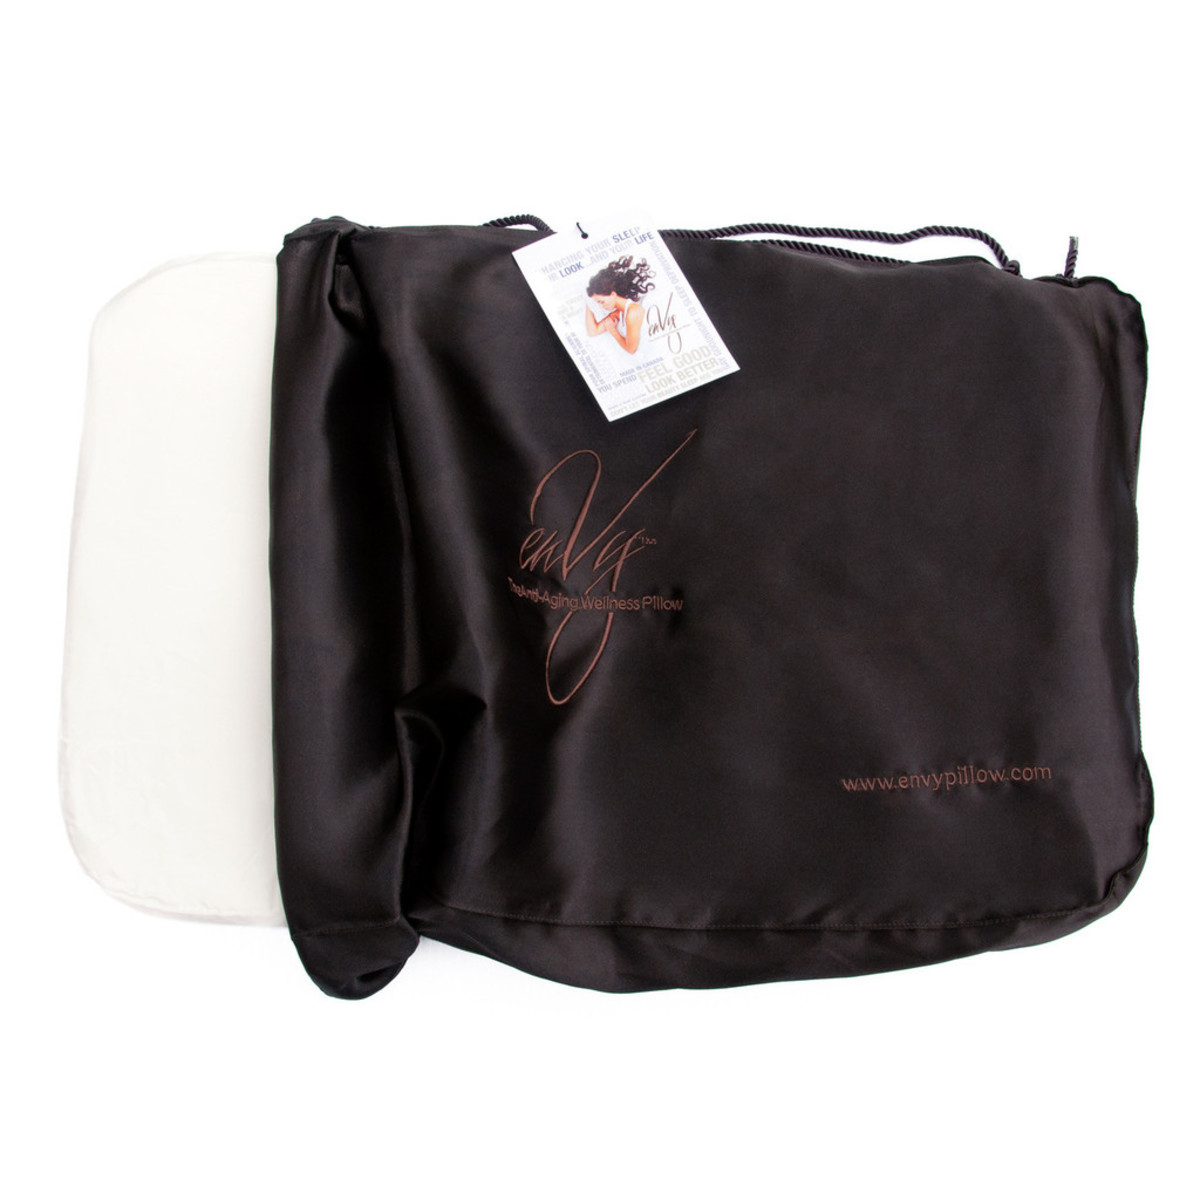 enVy Anti-Aging Wellness Pillow